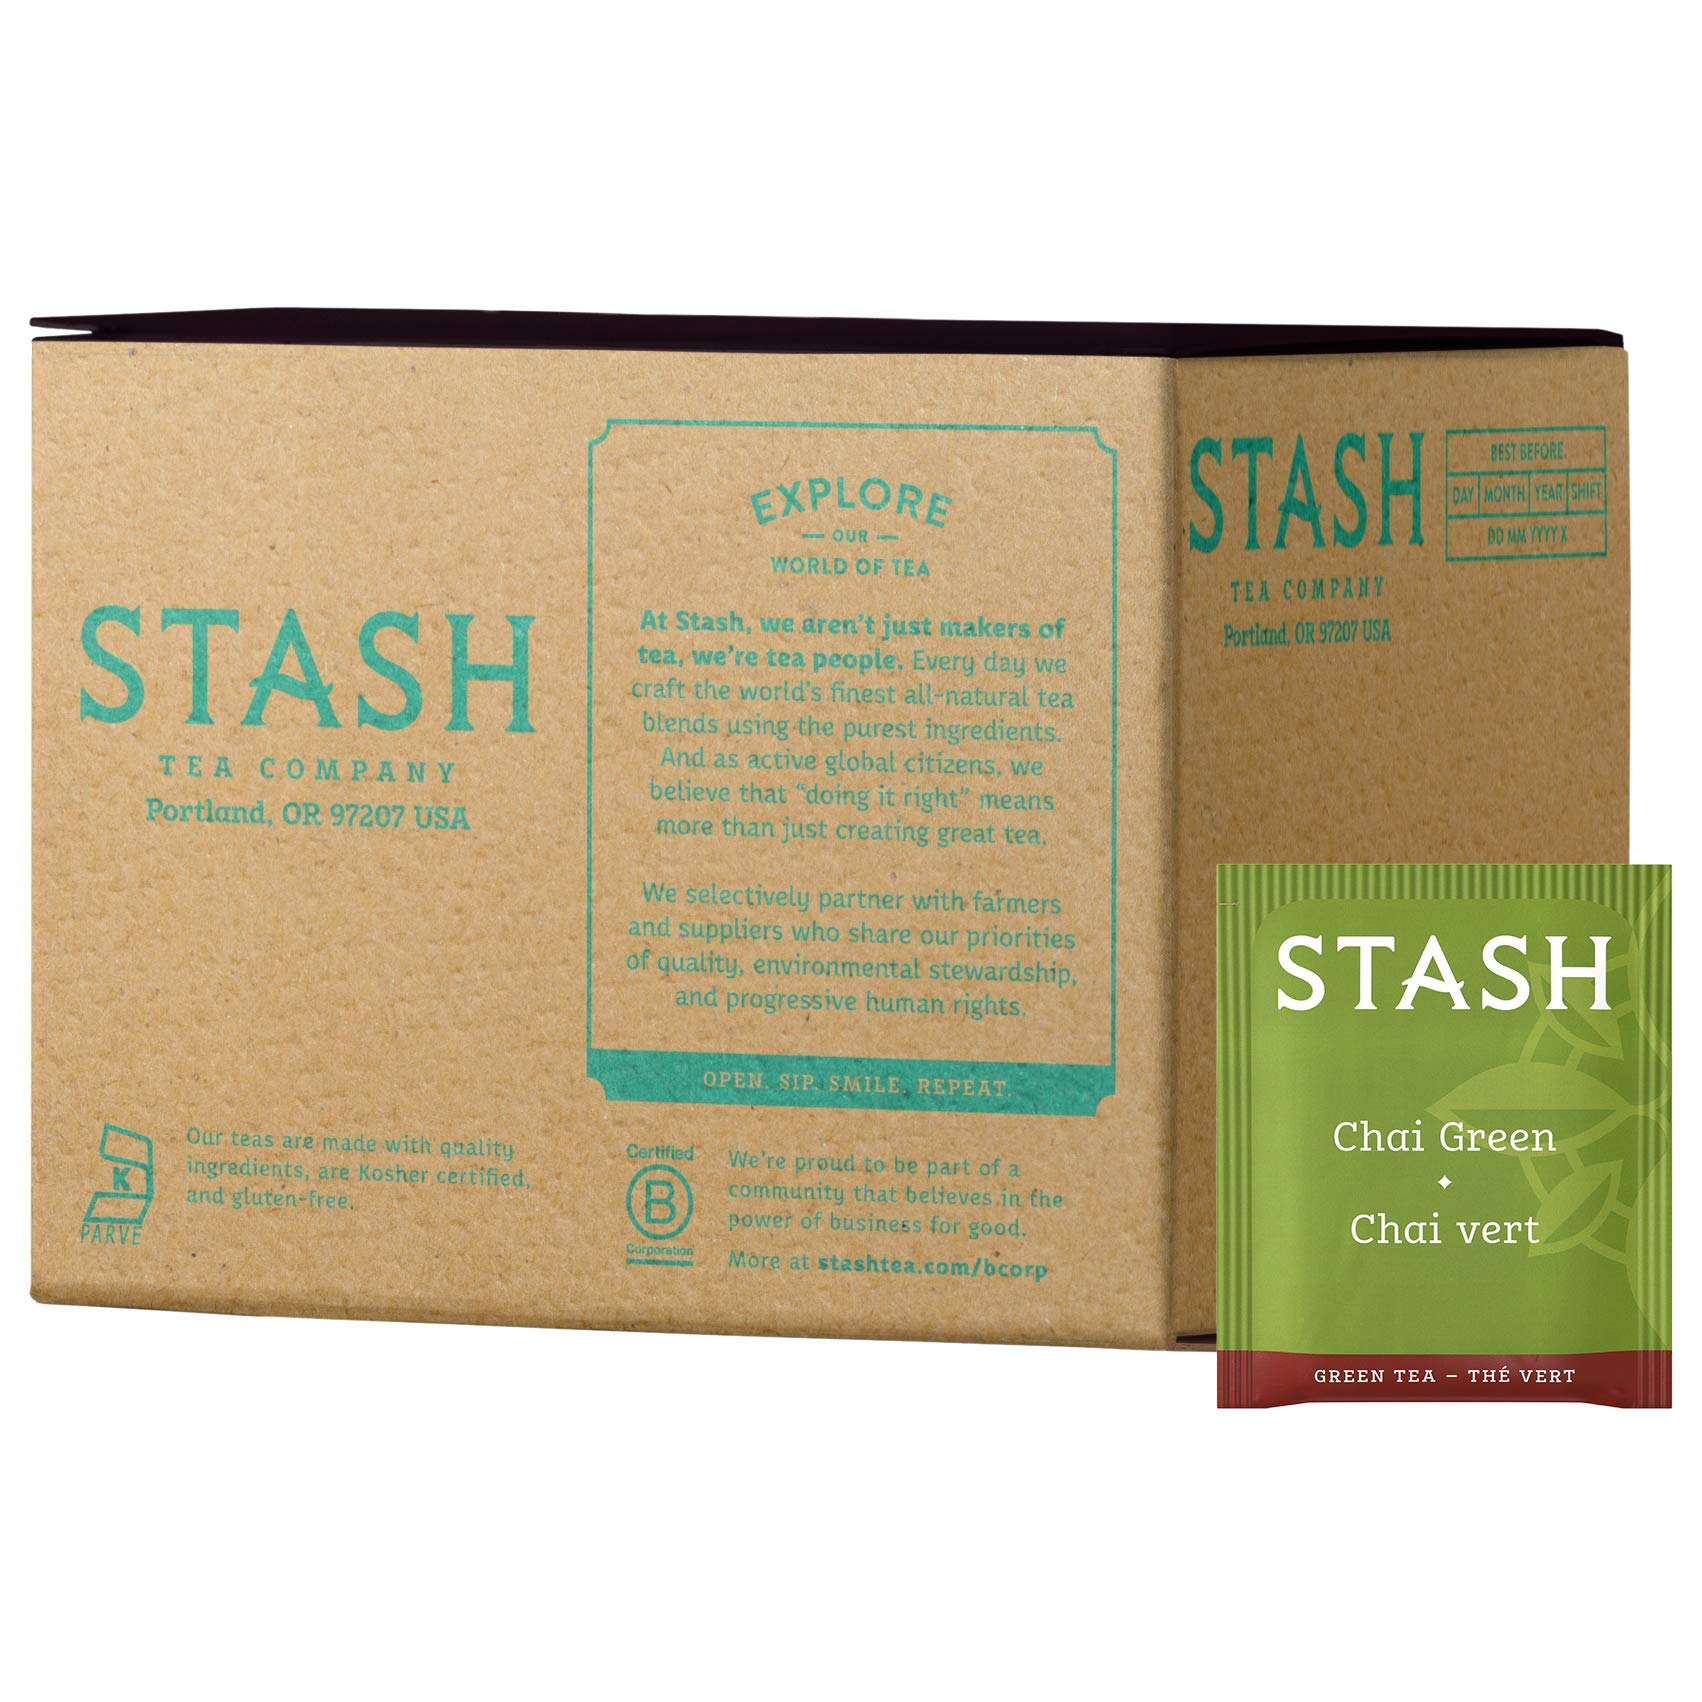 Stash Tea Green Chai Tea 100 Count Tea Bags in Foil (packaging may vary) Individual Spiced Green Tea Bags for Use in Teapots Mugs or Teacups, Brew Hot Tea or Iced Tea, Add Milk for Chai Latte by Stash